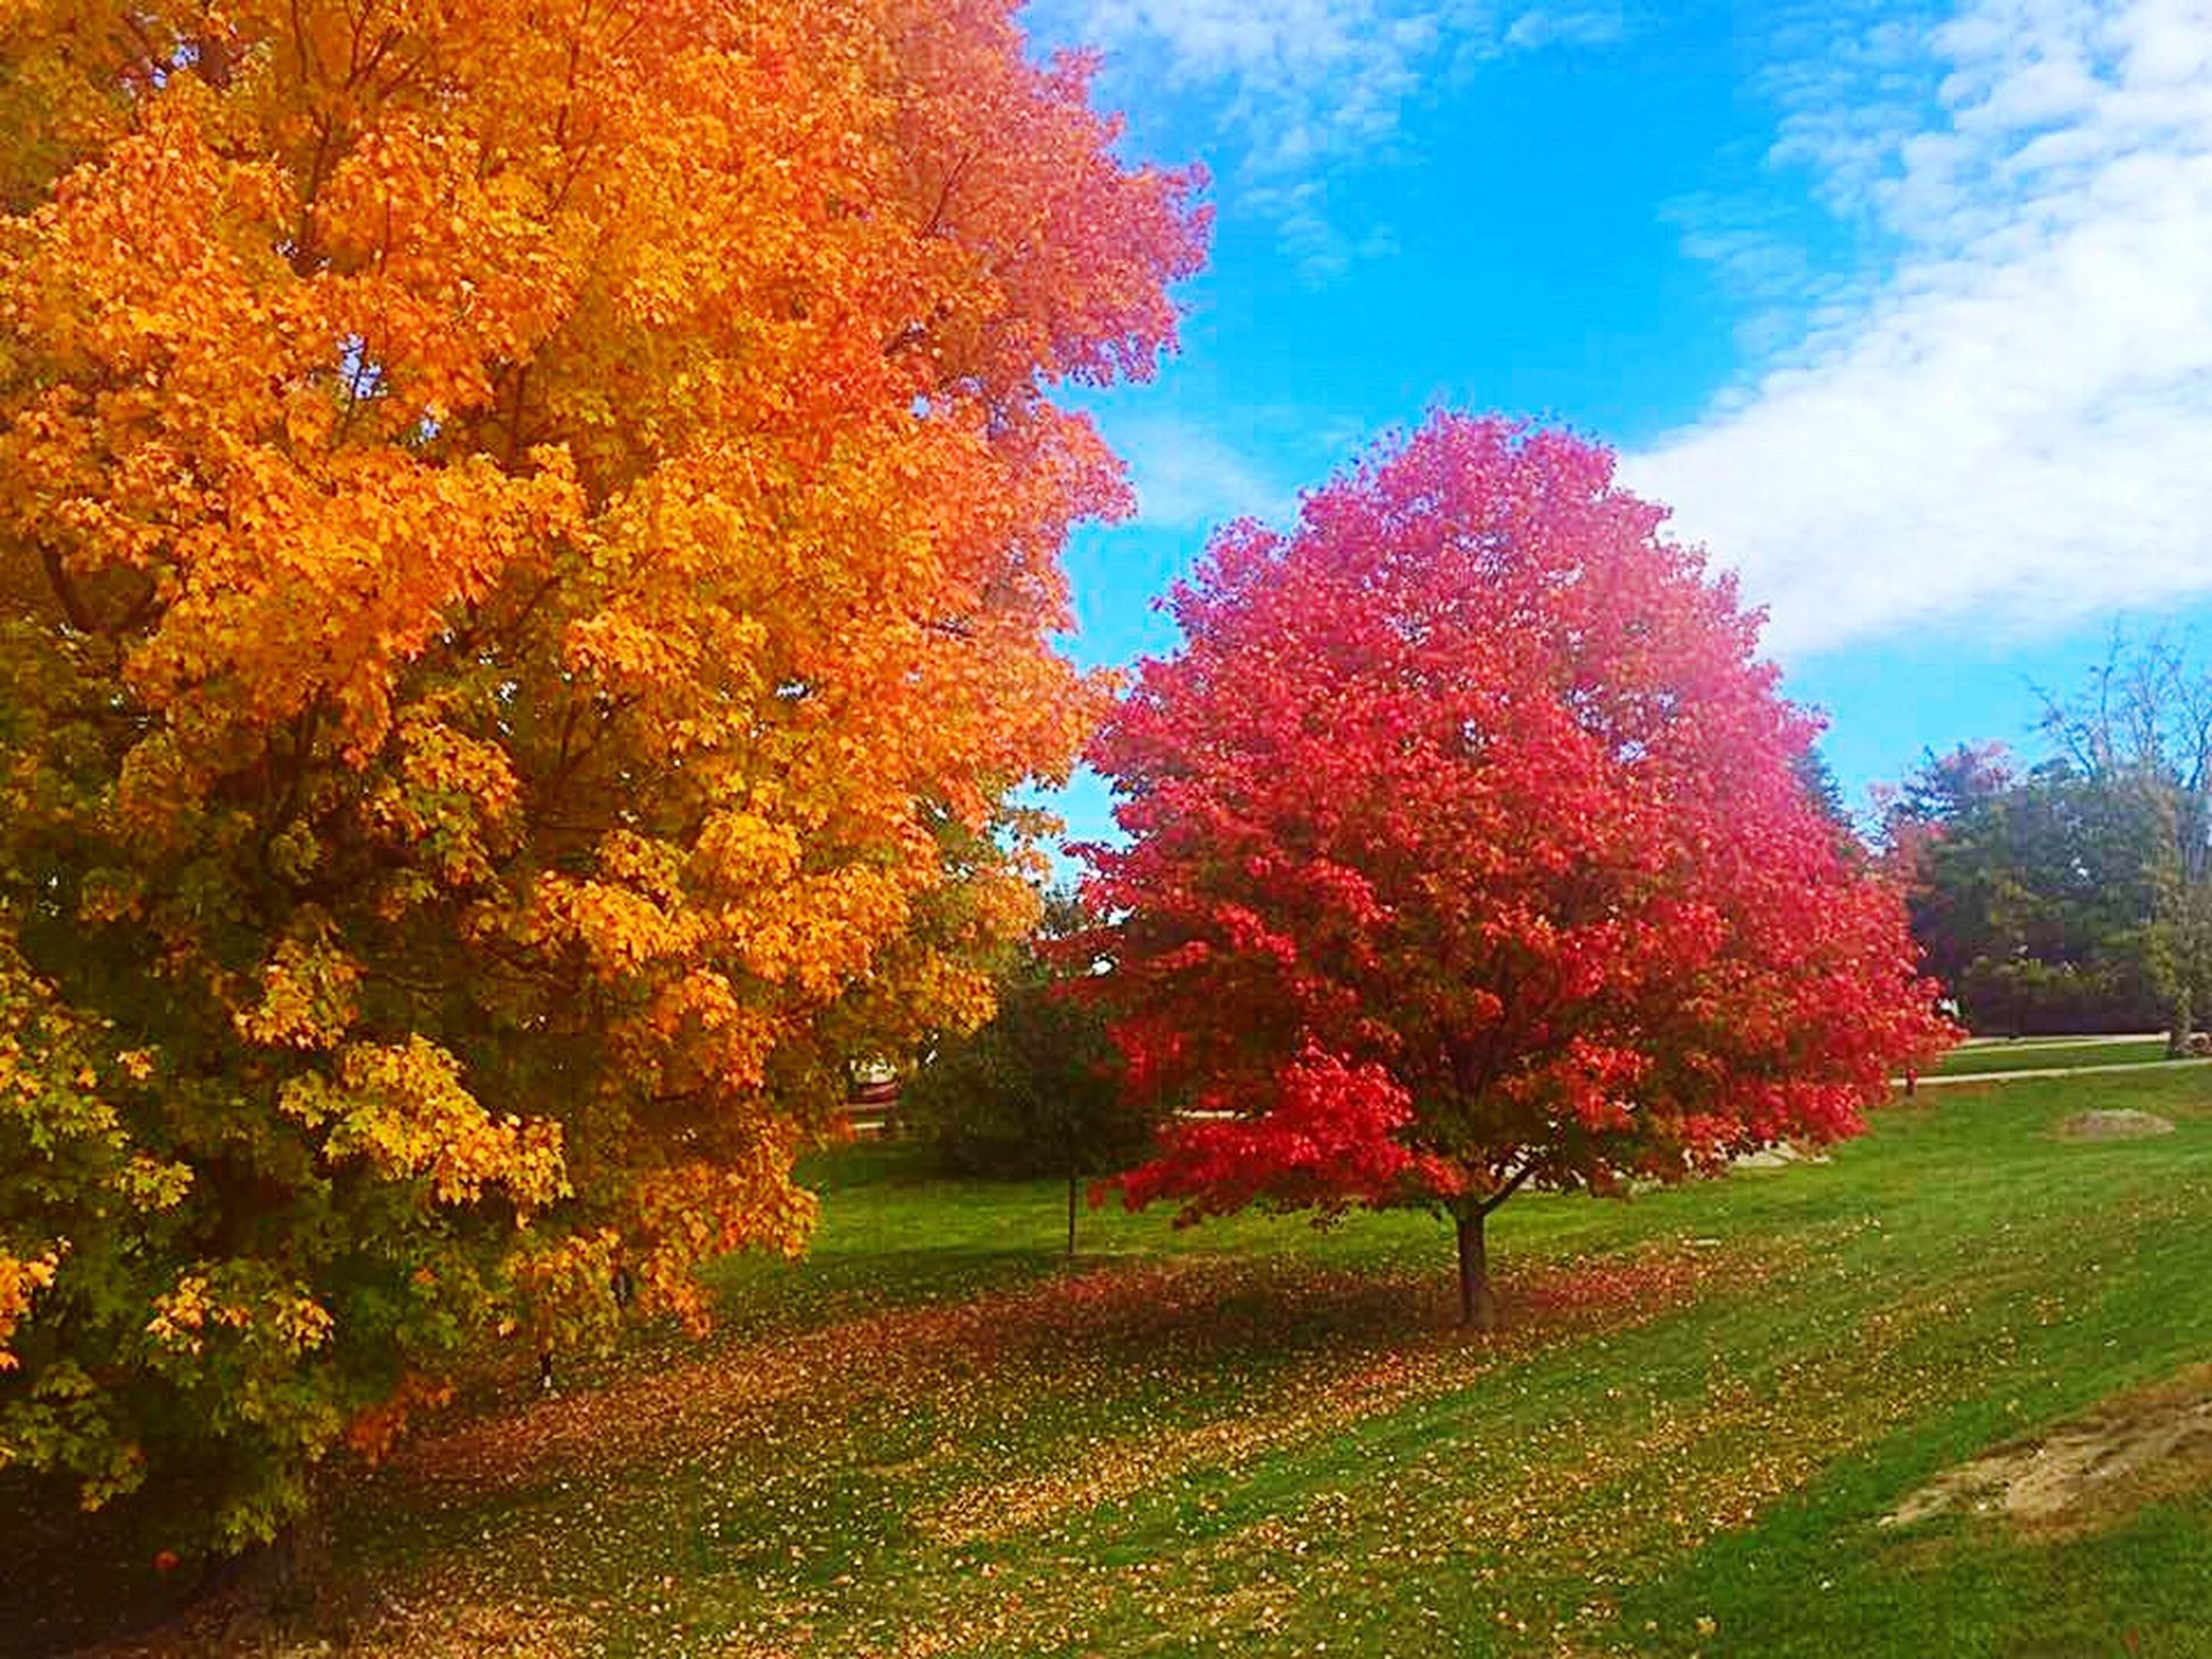 tree, autumn, change, growth, beauty in nature, season, grass, tranquility, tranquil scene, nature, field, scenics, park - man made space, day, multi colored, grassy, flower, plant, sky, blue, park, fragility, green color, vibrant color, outdoors, freshness, lawn, non-urban scene, growing, no people, springtime, colorful, grass area